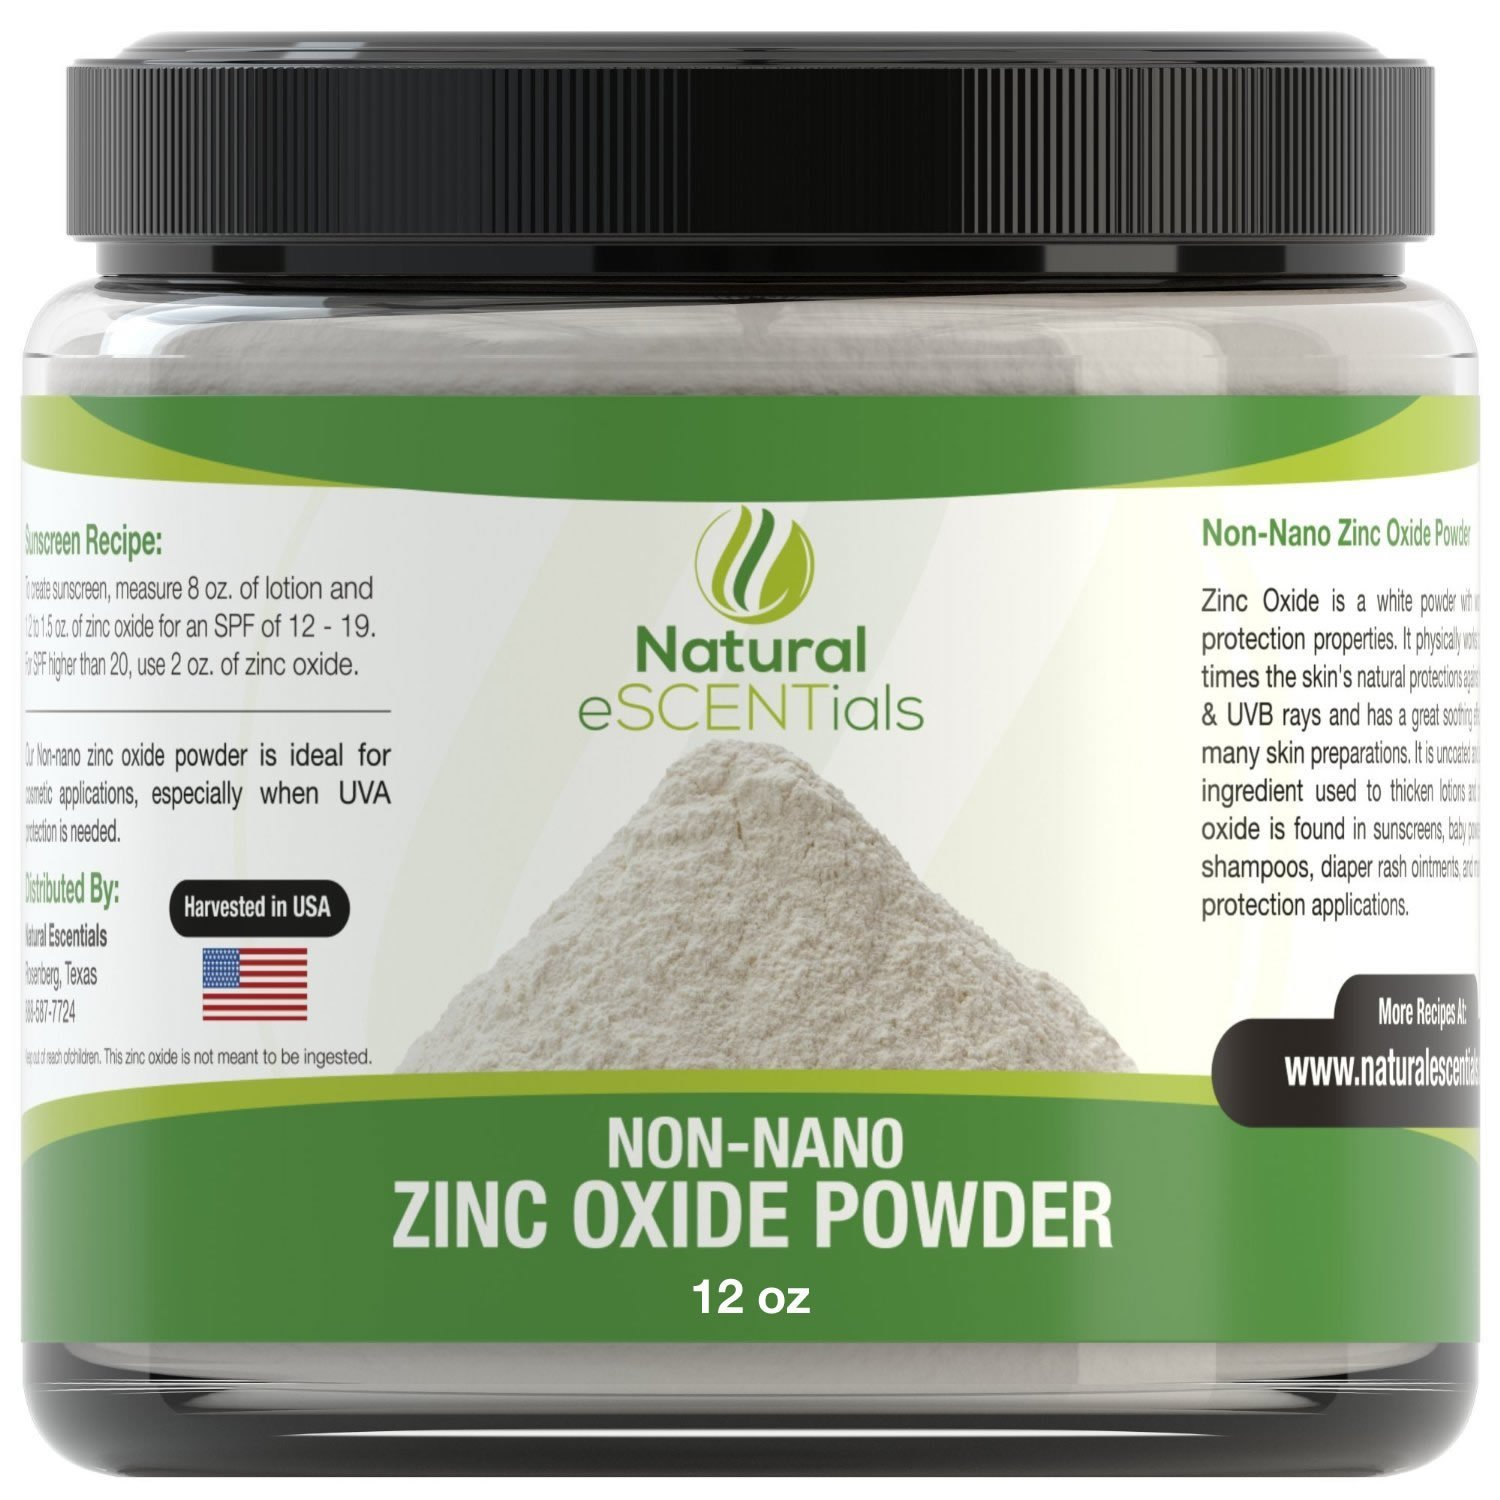 Natural Zinc Oxide Powder - Non Nano and Uncoated - Baby Safe, Cosmetic Grade Fine Powder - FREE: Recipe eBook by Natural Escentials